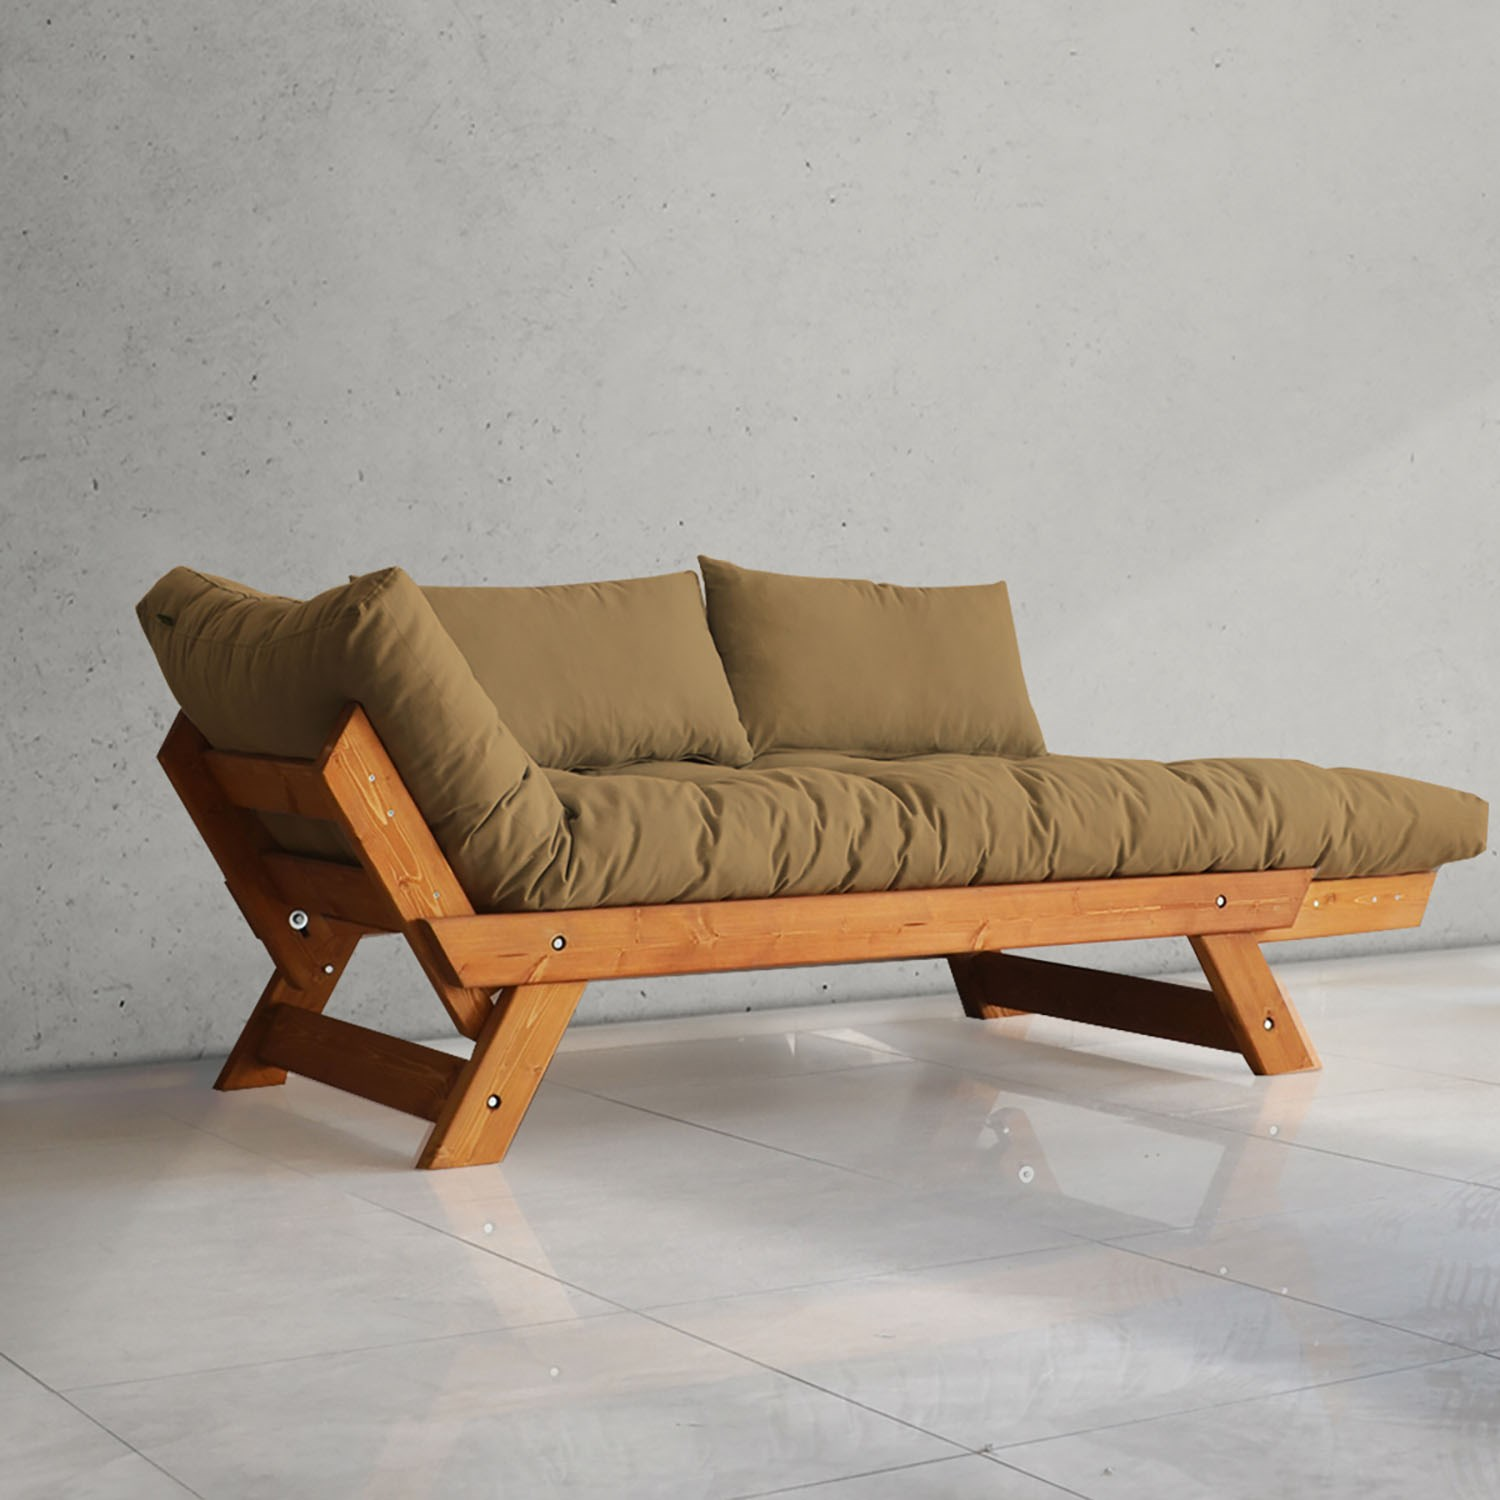 Massive Wooden Couch Armchair Bed For Singles Linen Fabric TV Sofa Lounge Davenport Chesterfield Studio Couch Seat 3 Colourway| | - AliExpress